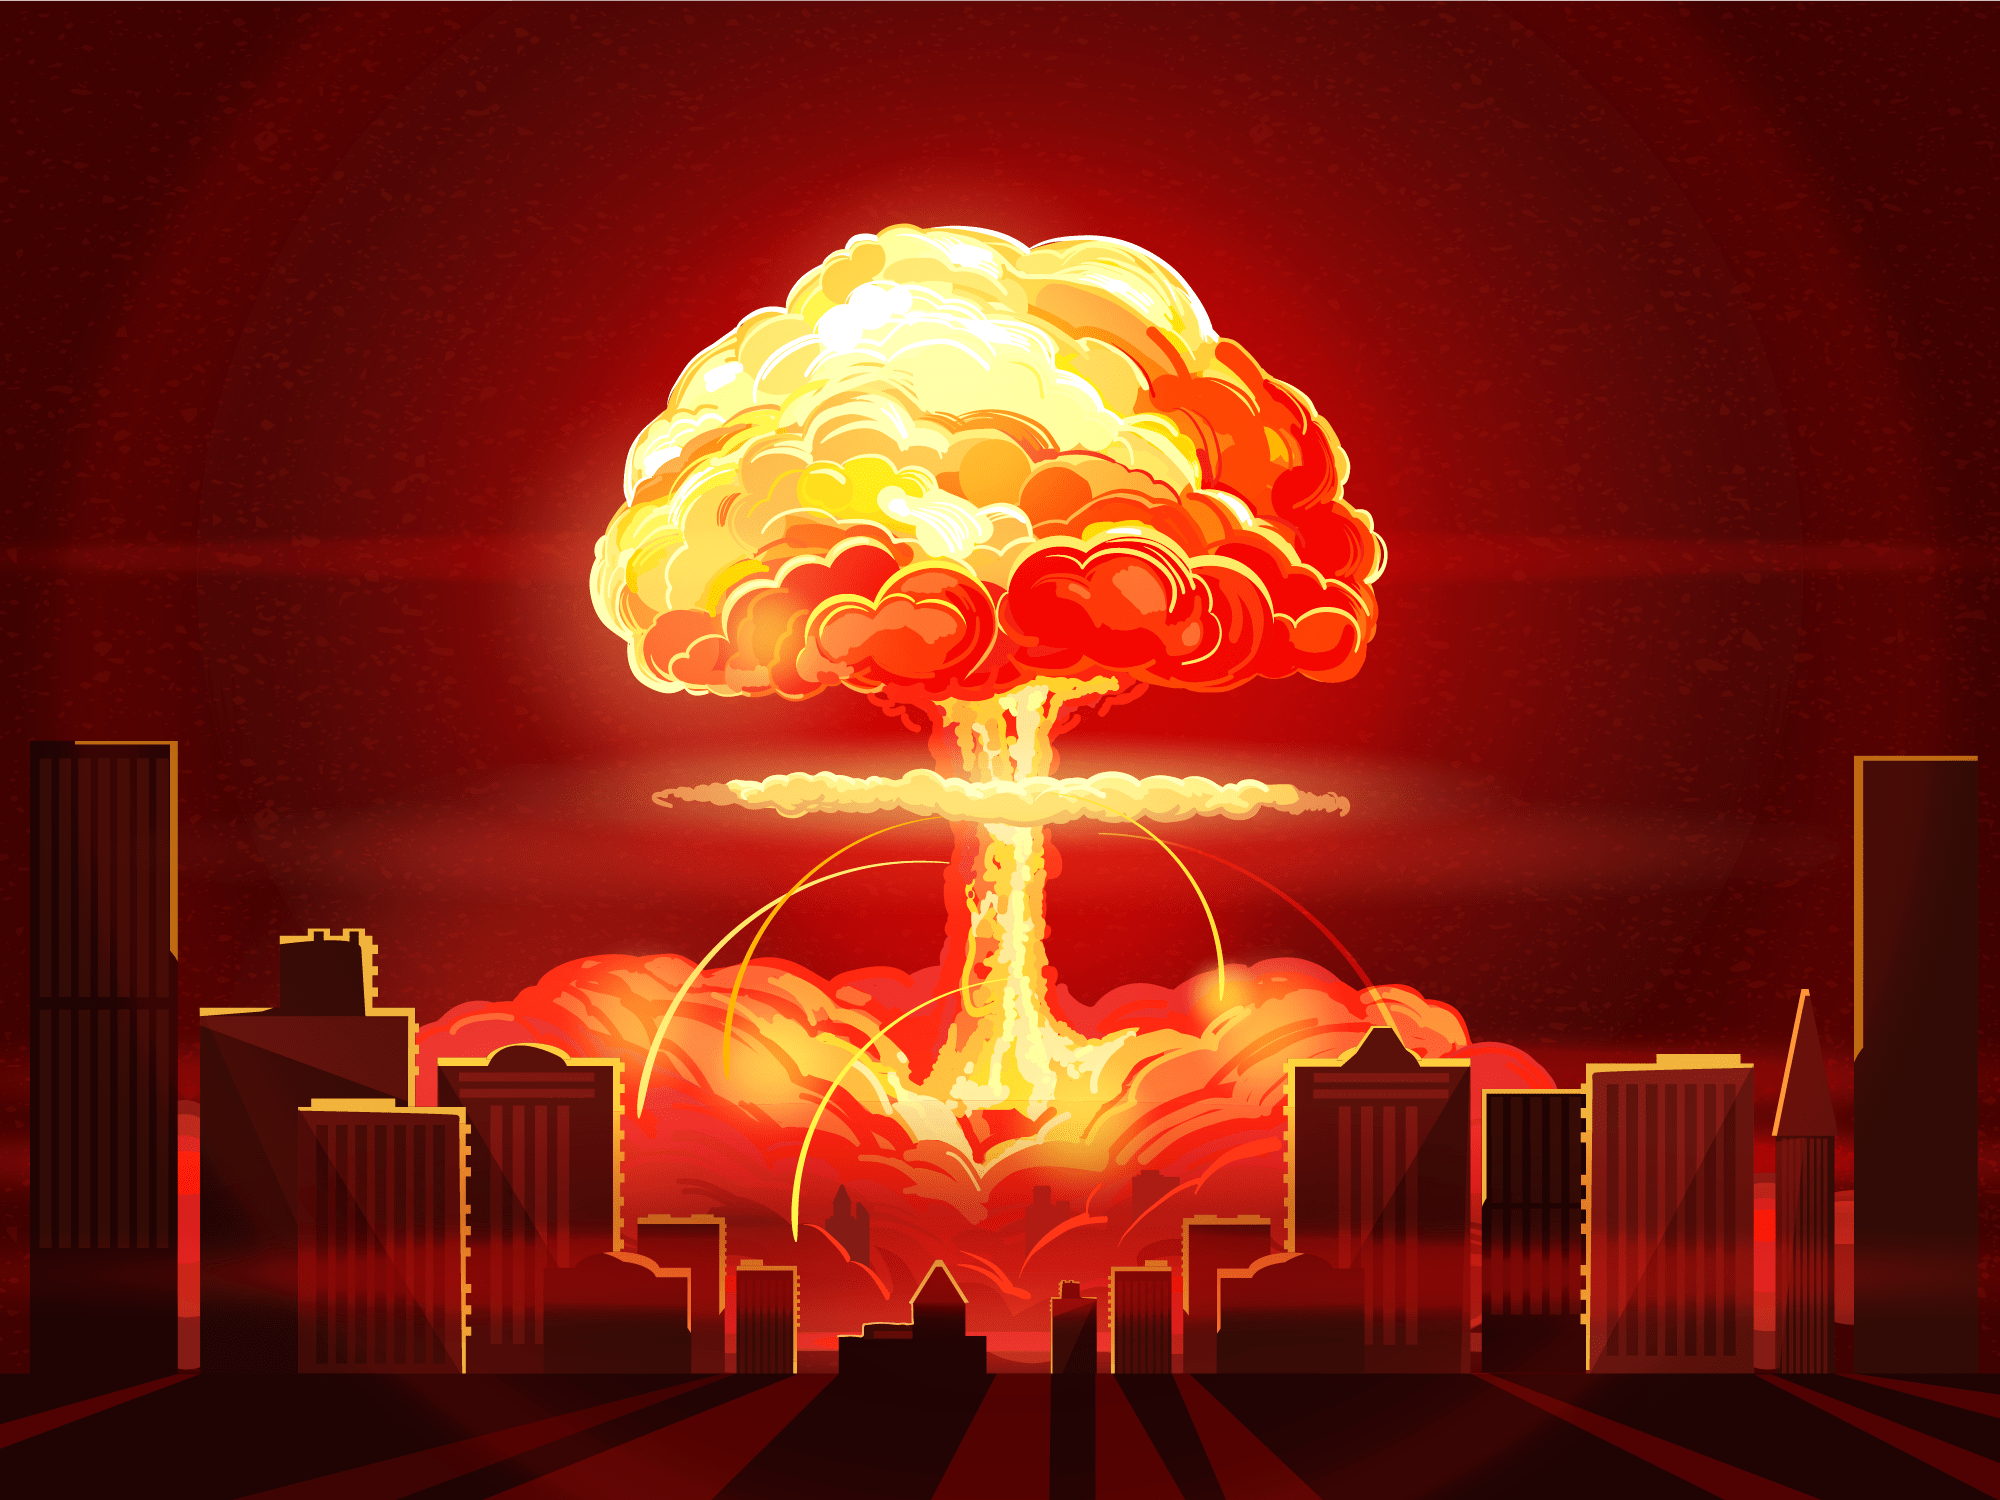 nuclear bomb explosion blast city shutterstock_639638614